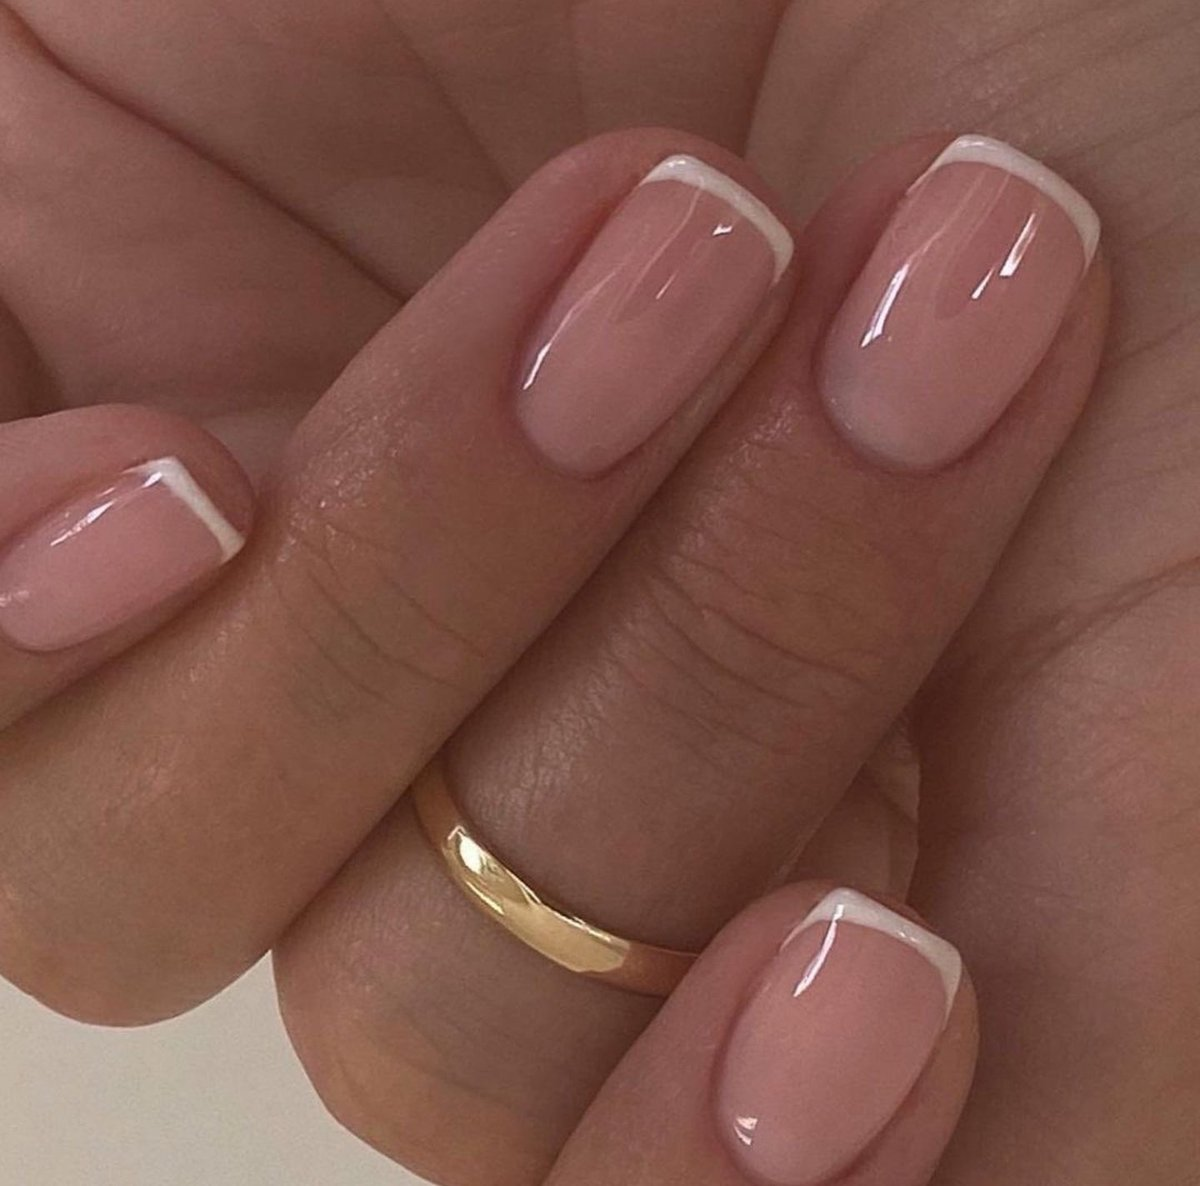 French Manicure 💅 #queensway #manicurelondon #manicure #gelmani #shellacnails #londonbeauty #bayswater #nails https://t.co/uTs49ftqAc